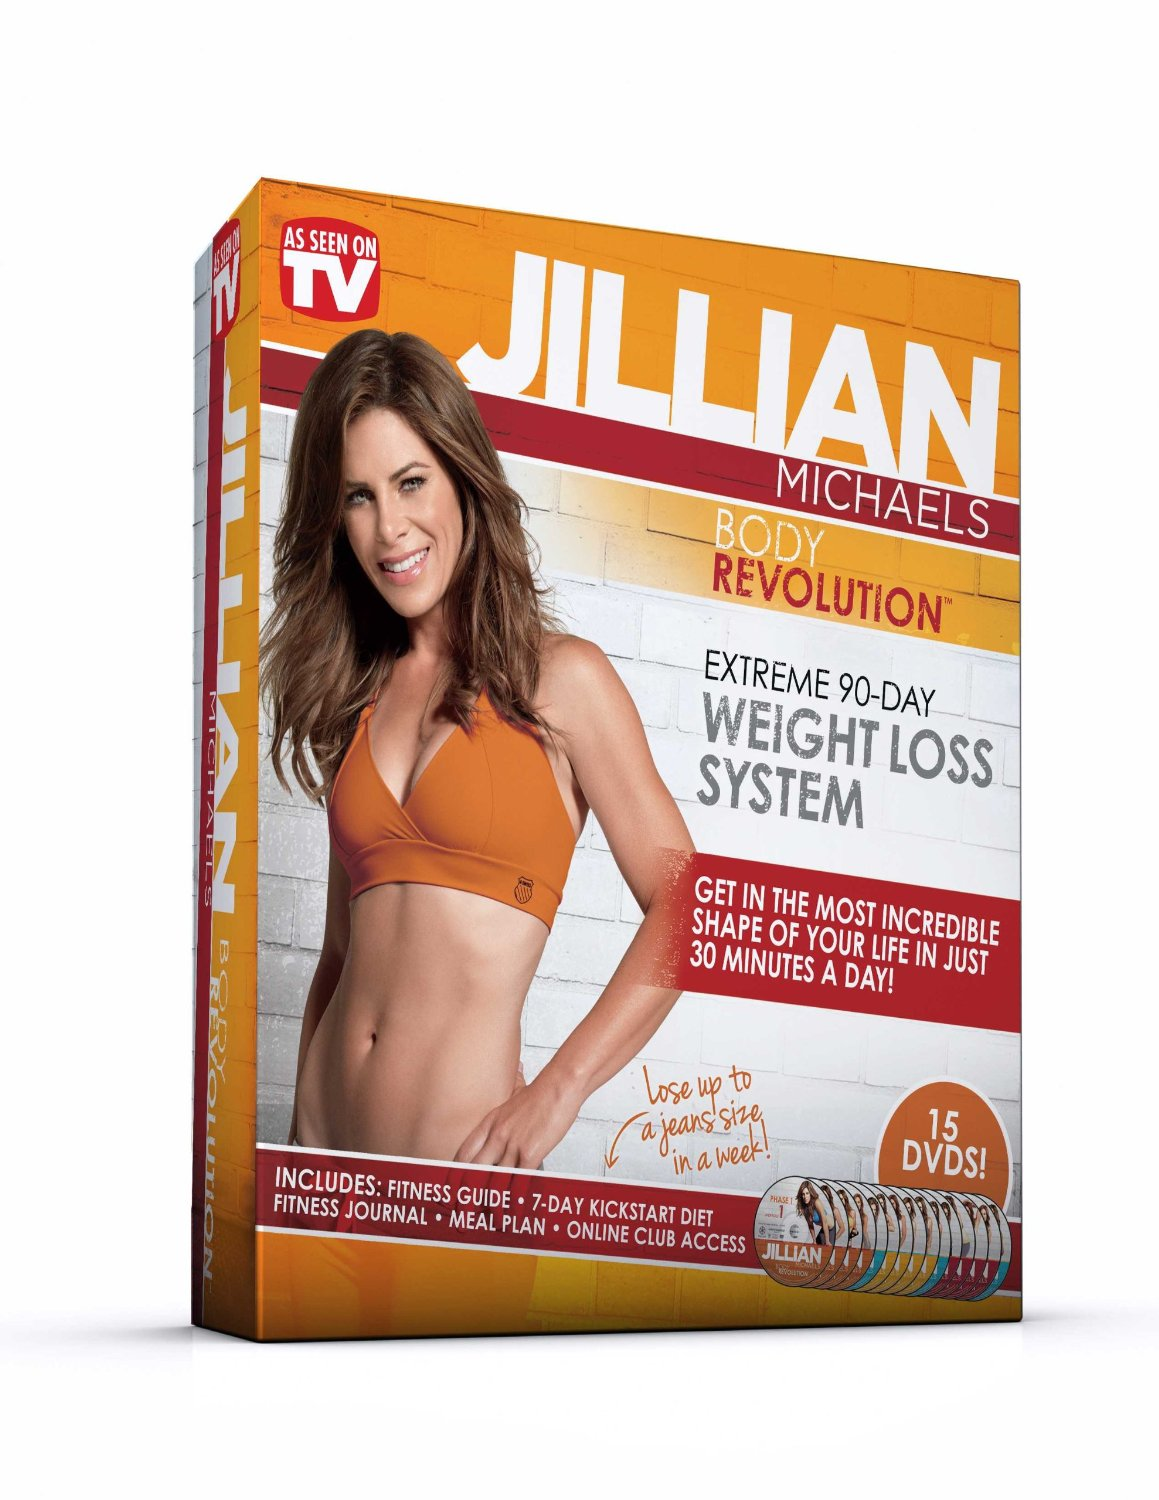 Fitness workout dvds